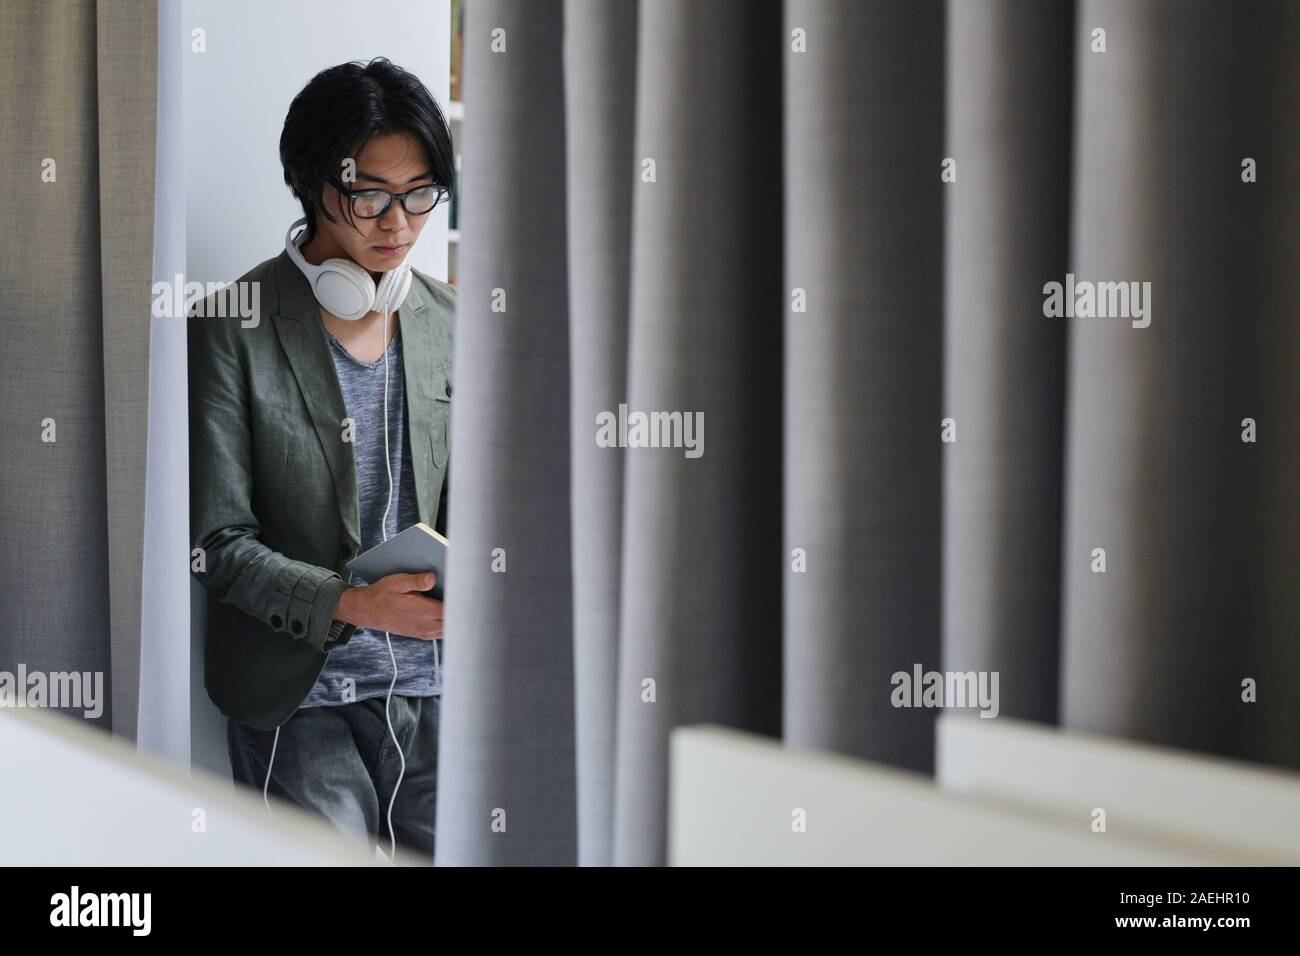 Asian young man in eyeglasses and with headphones busy reading a book Stock Photo